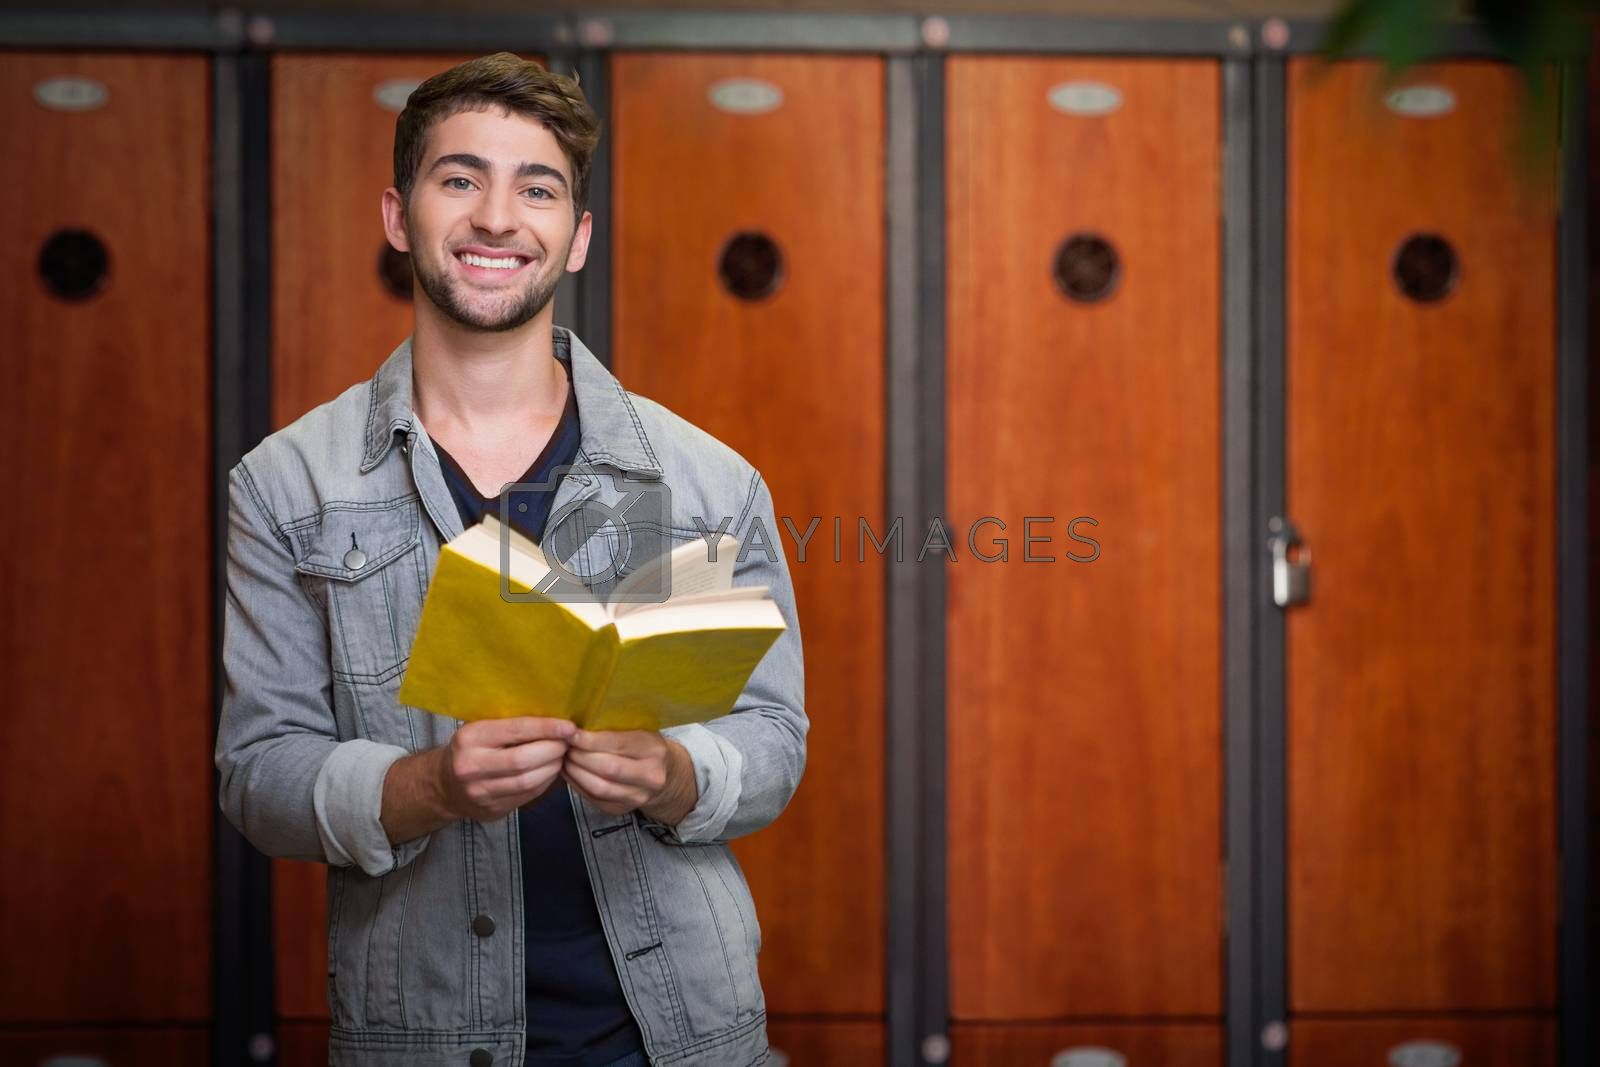 Composite image of student smiling at camera in library by Wavebreakmedia